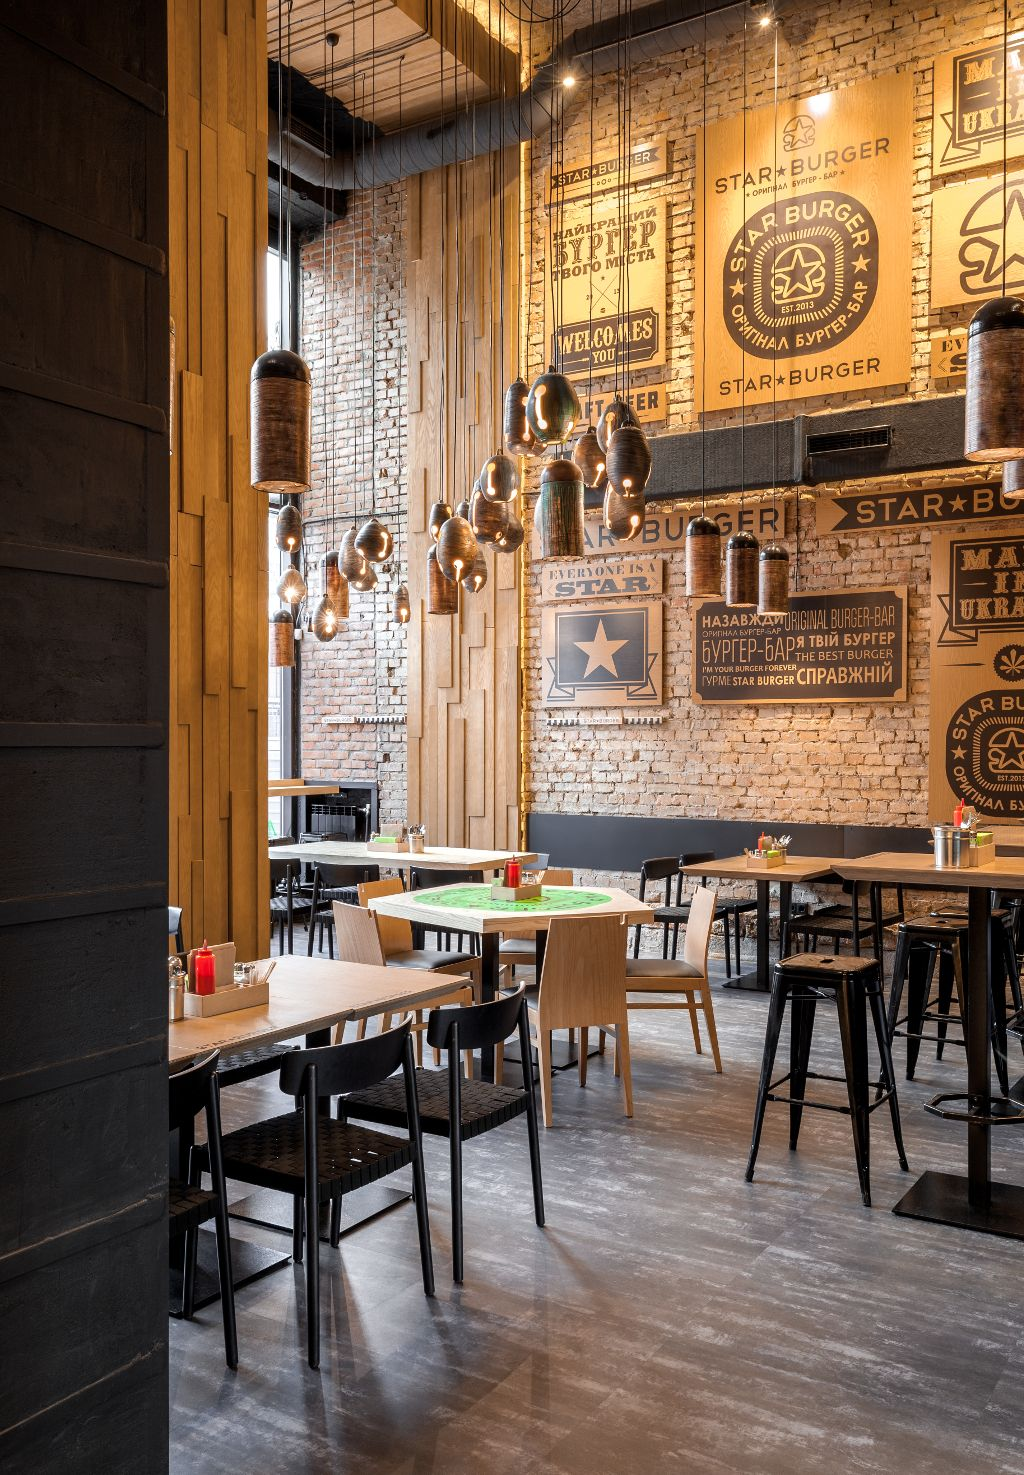 restaurant & bar design awards shortlist 2015: another space